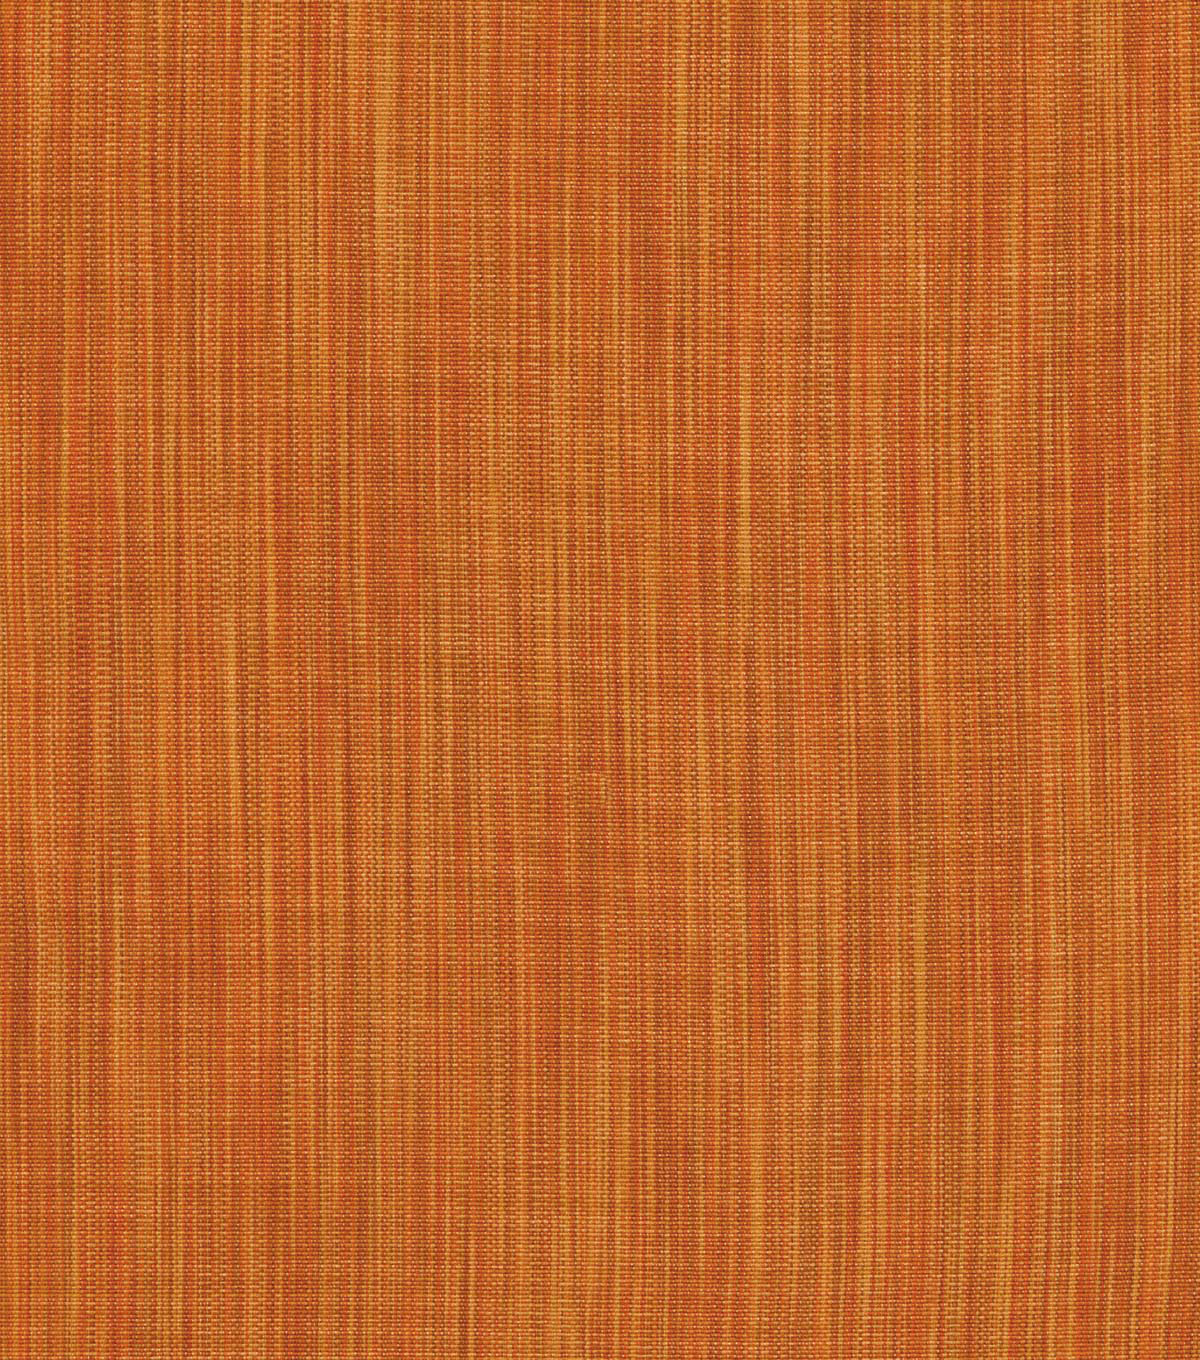 Home Decor 8\u0022x8\u0022 Swatch Fabric-IMAN Home Magical Threads Henna